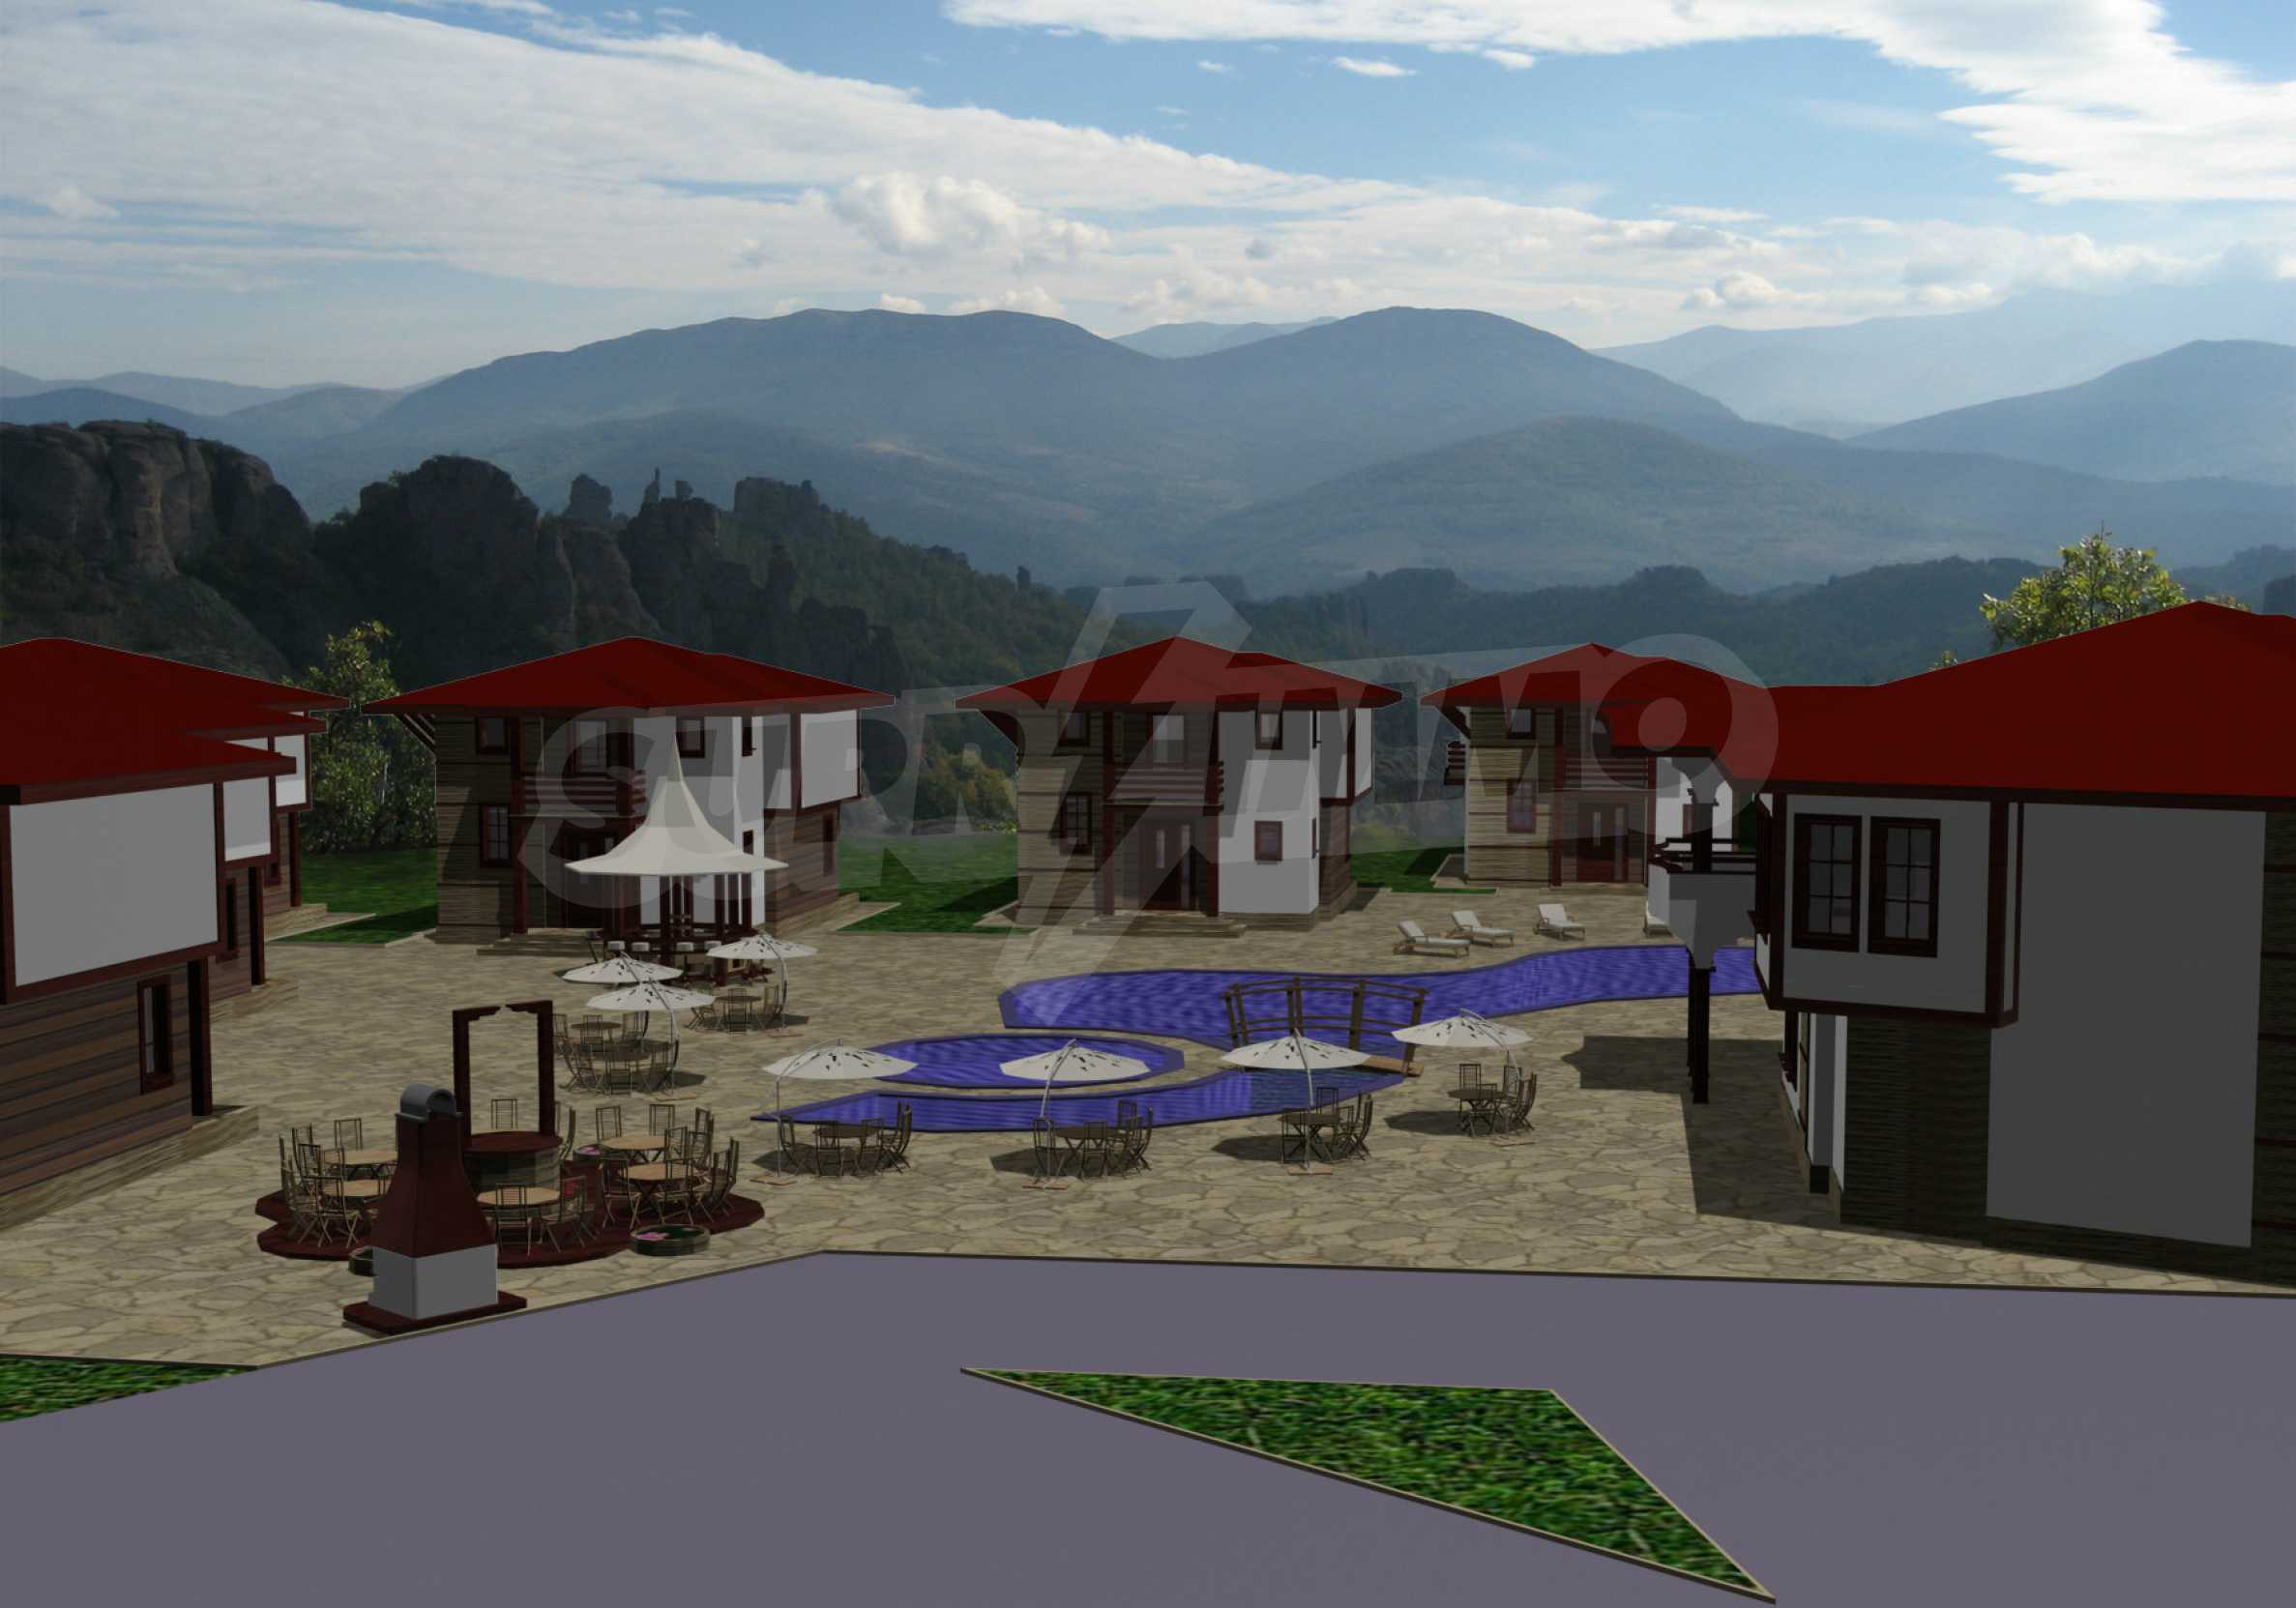 Regulated plot of land with project by the Belogradchik rocks 2